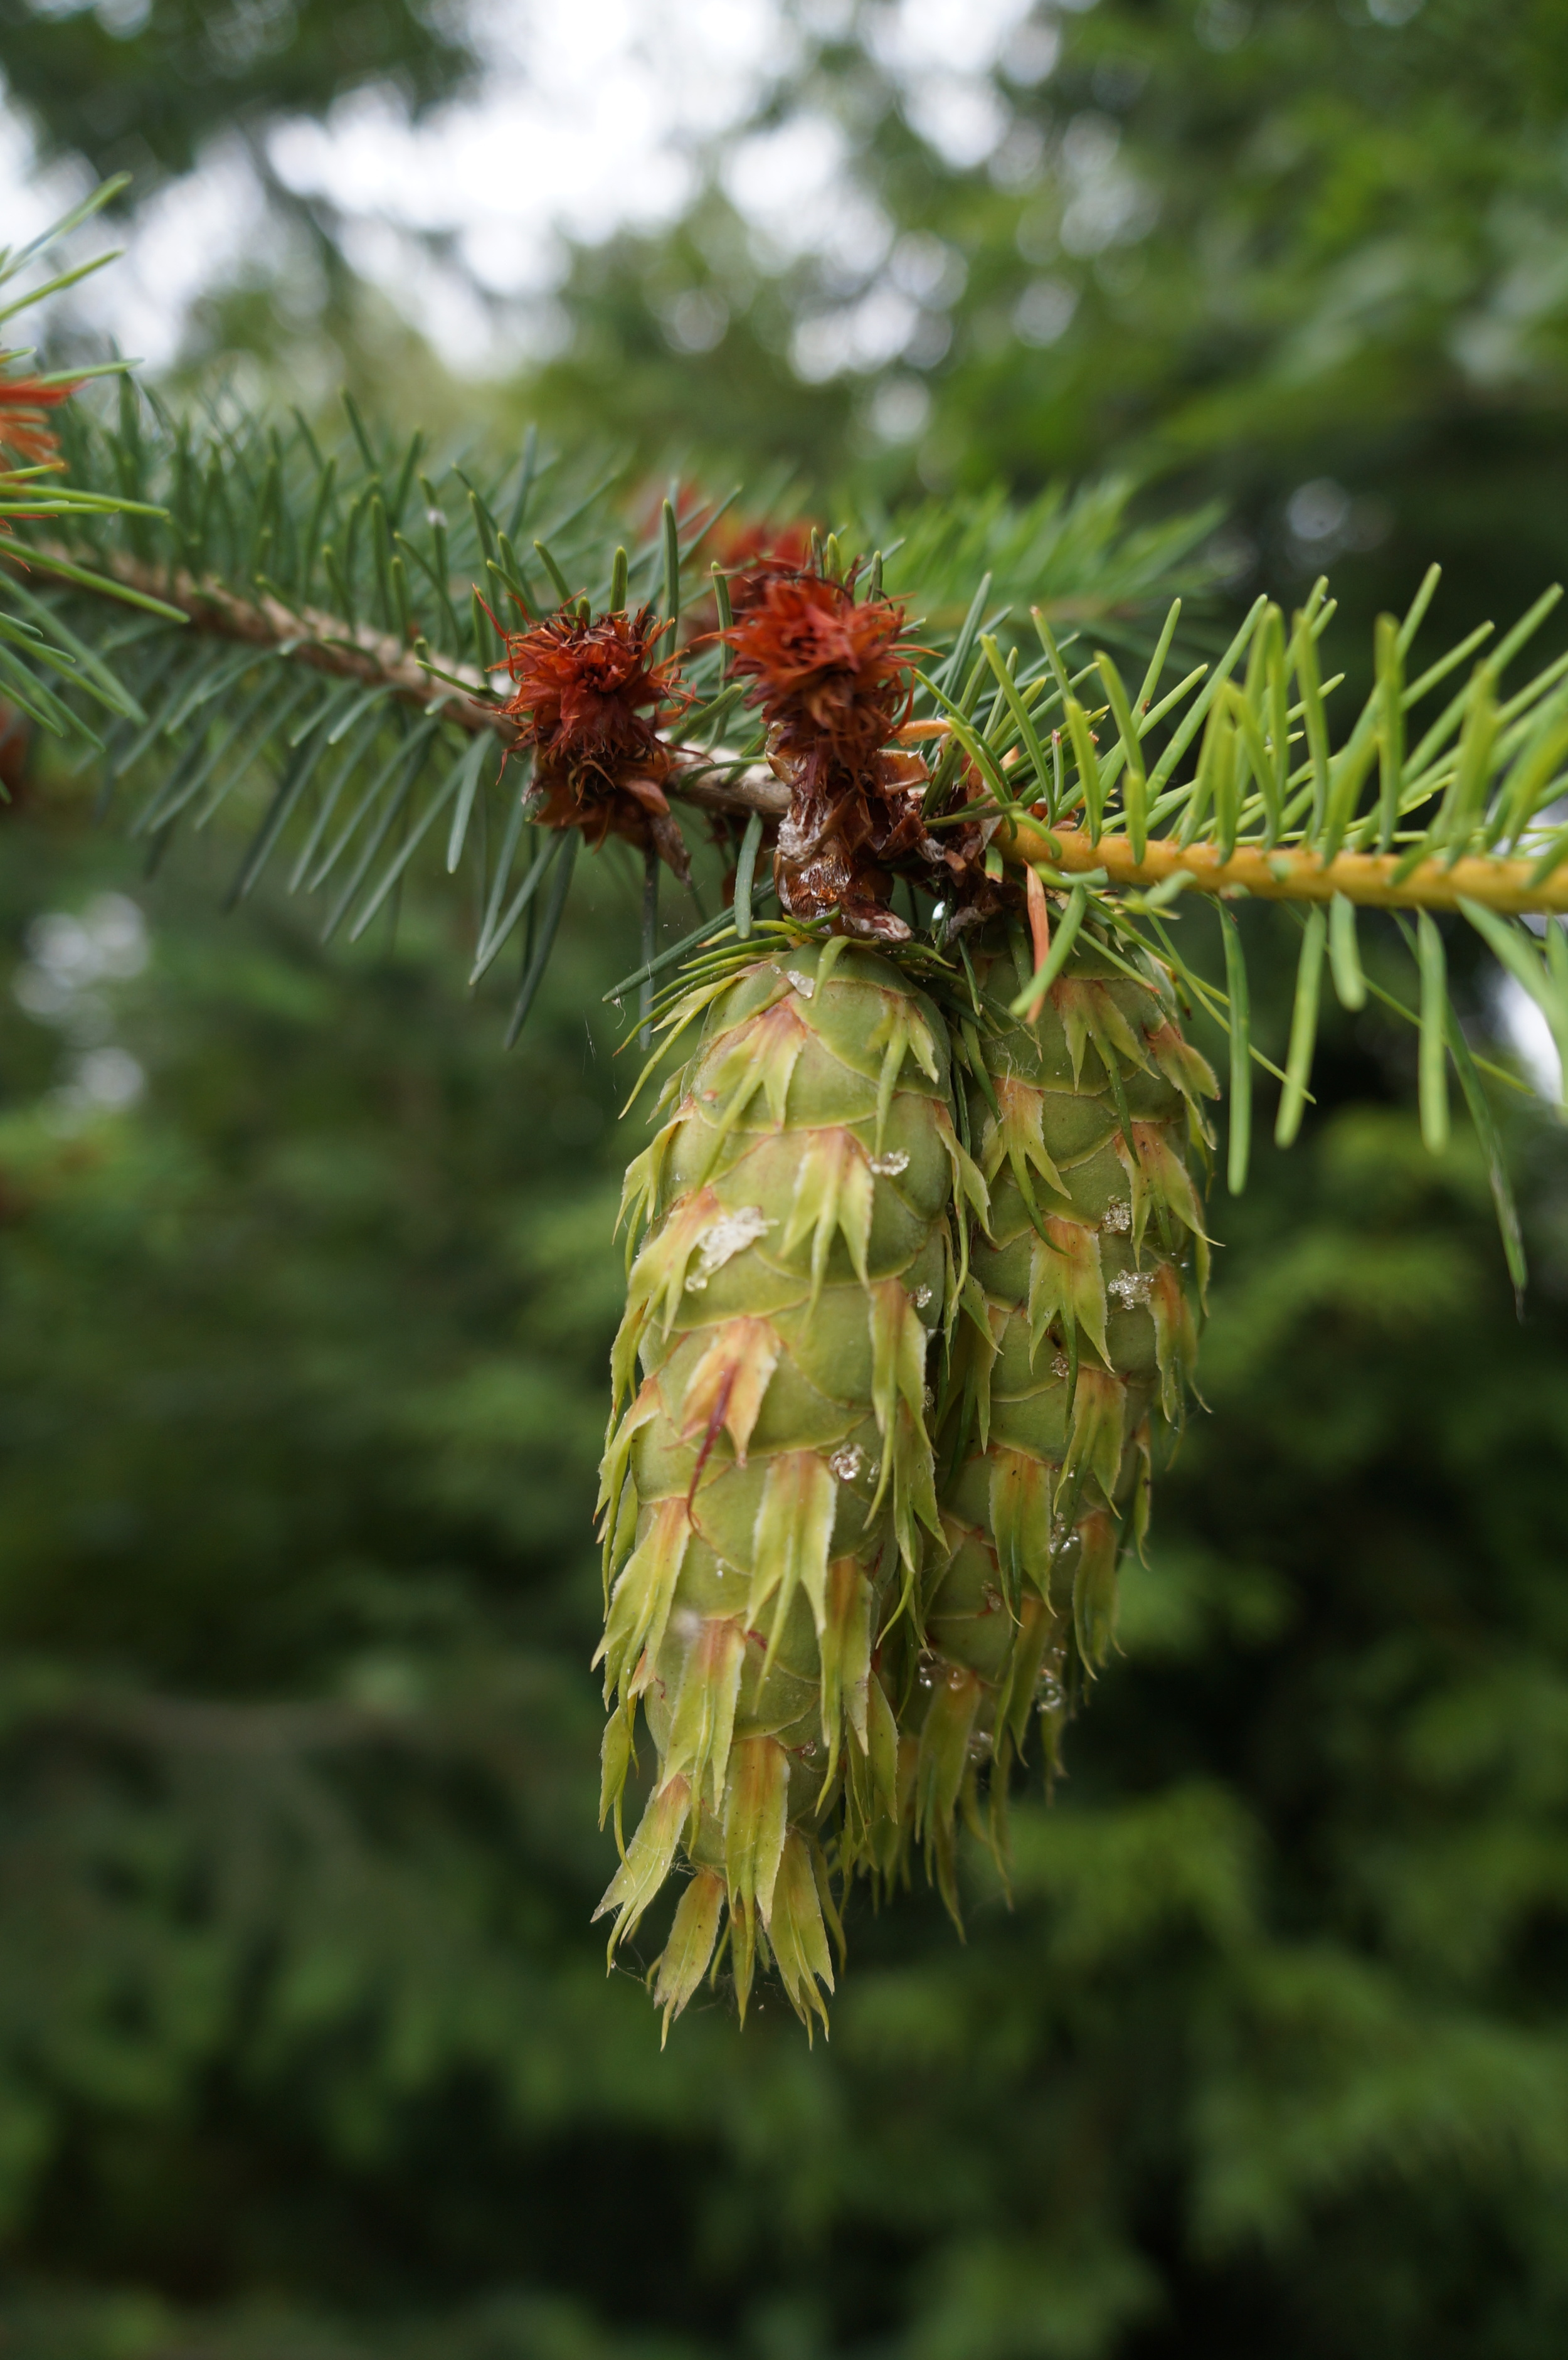 Female flowers and a maturing cone on a Douglas fir /  Pseudotsuga menziesii.  The female flowerswill ripen into cones after being wind-pollinated by the little male flowers.